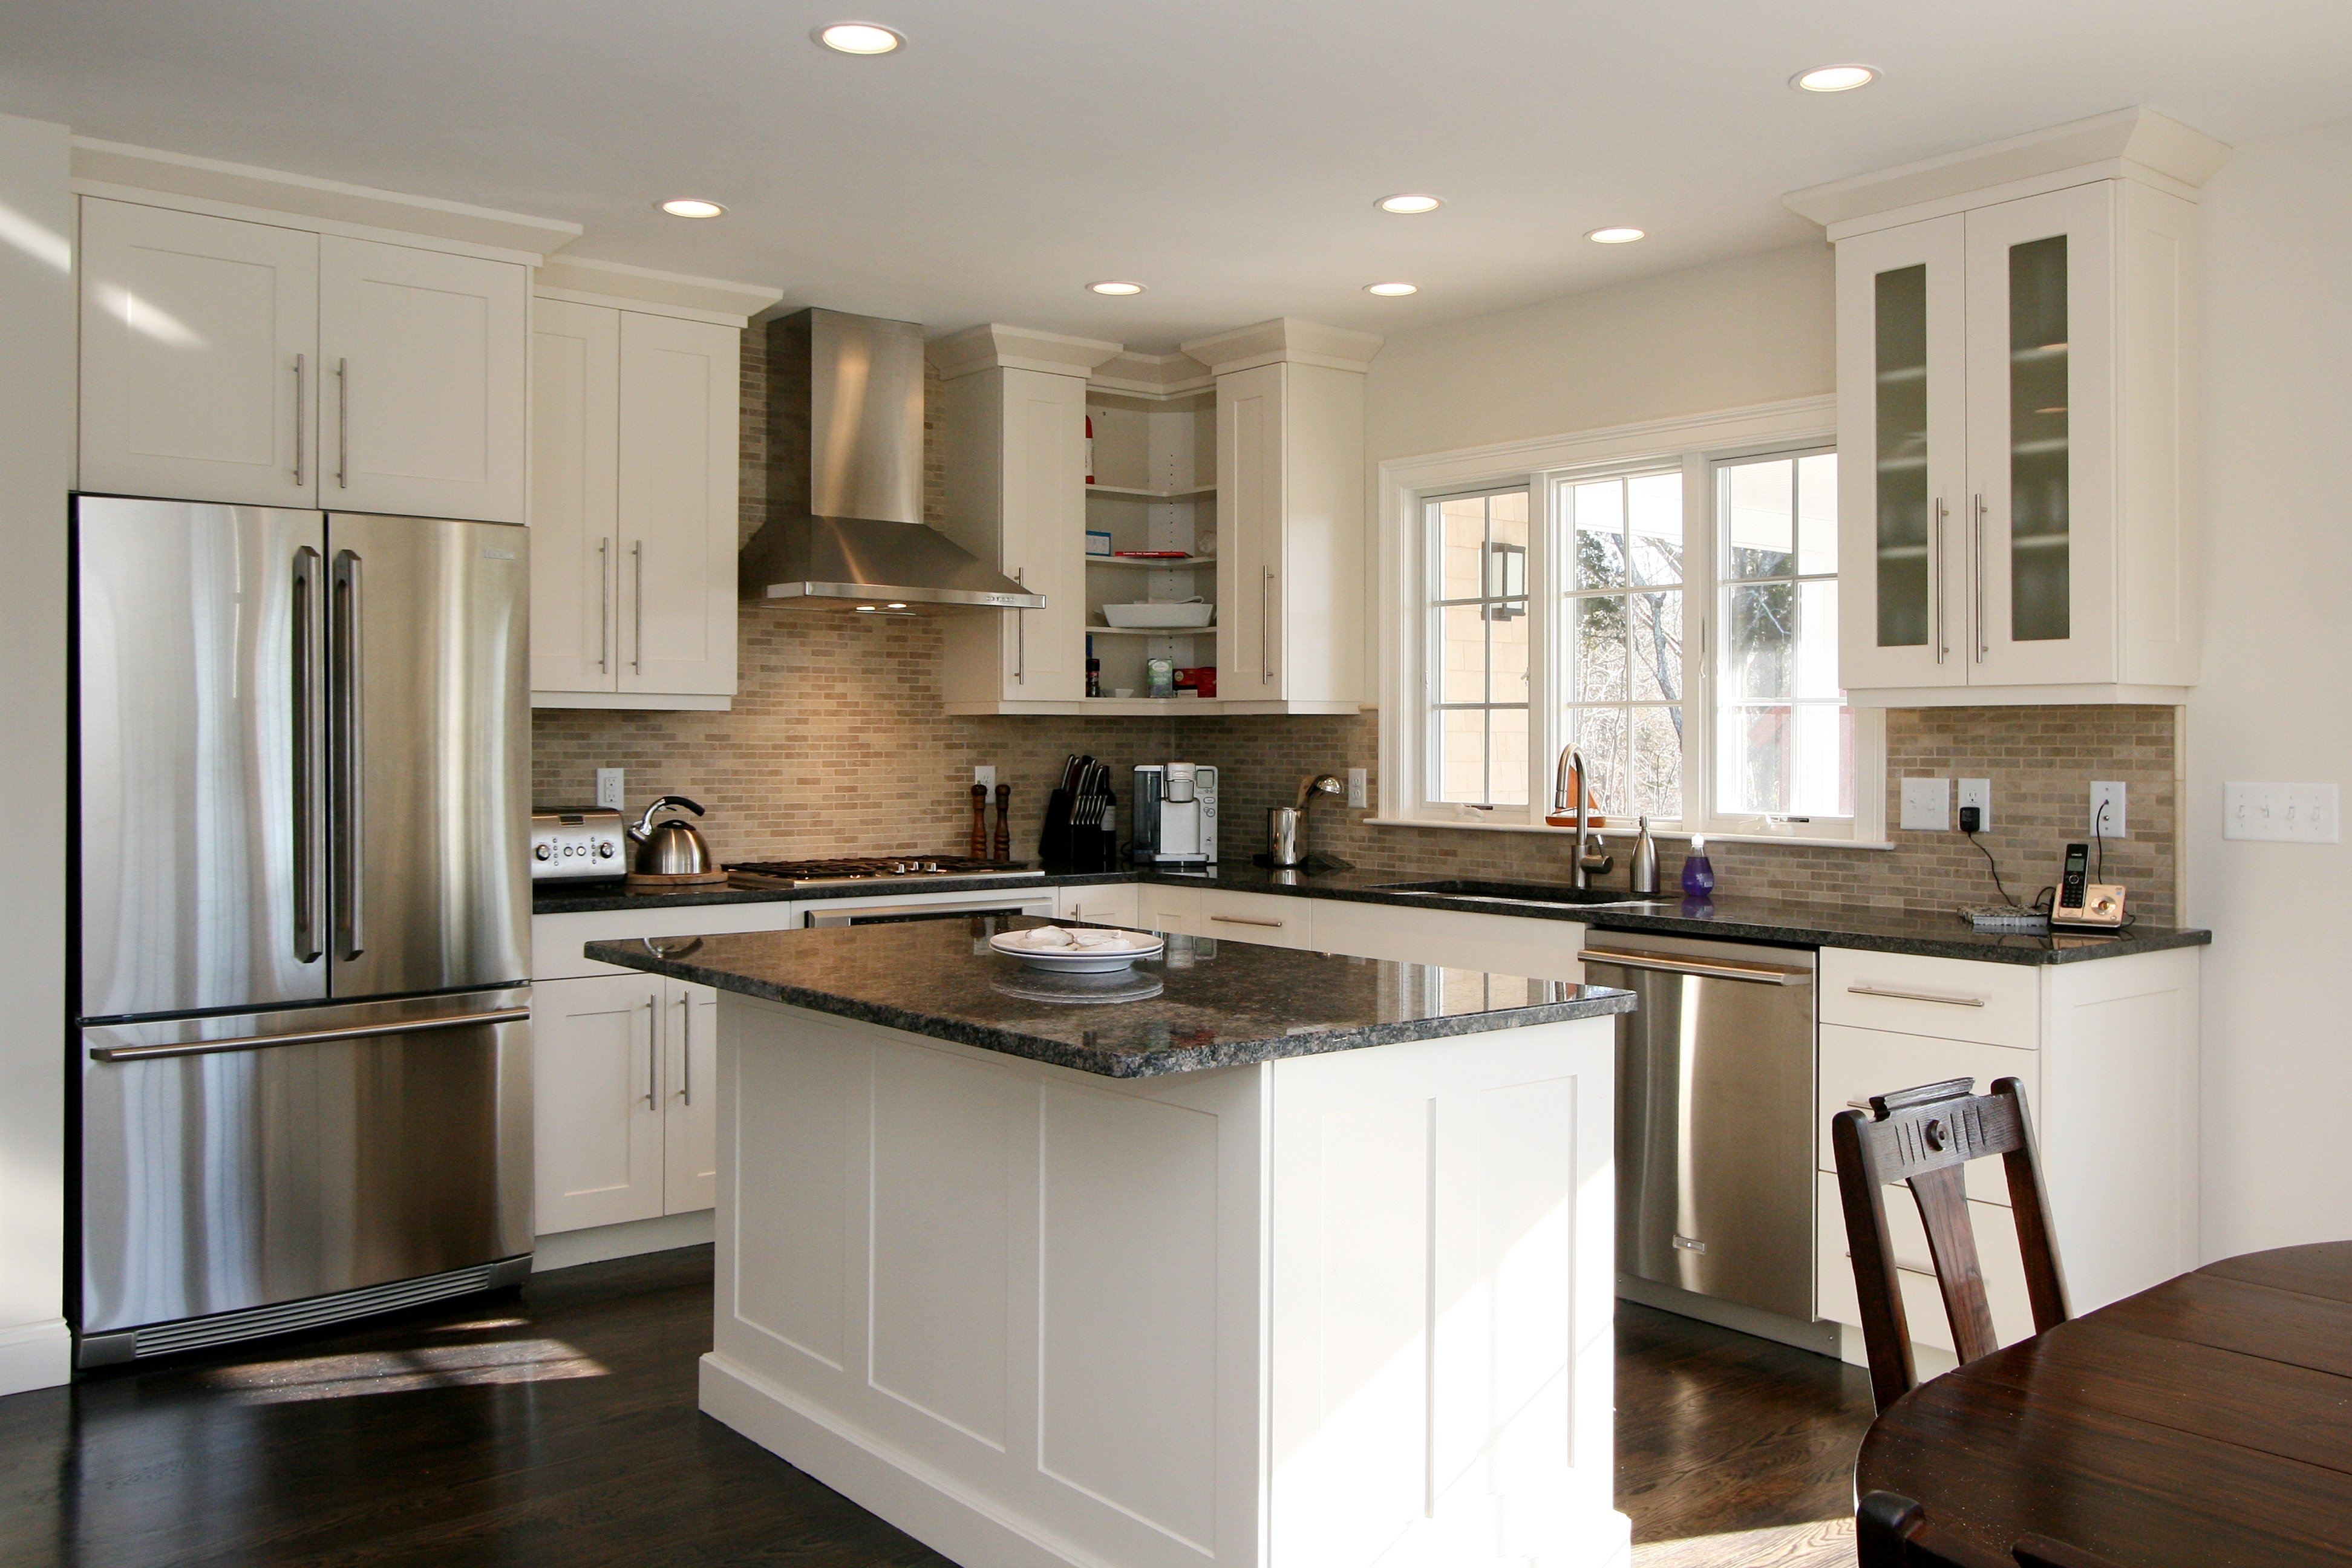 10 Fashionable Kitchen Layout Ideas With Island kitchen design island or peninsula plans with peninsulas designs 2021